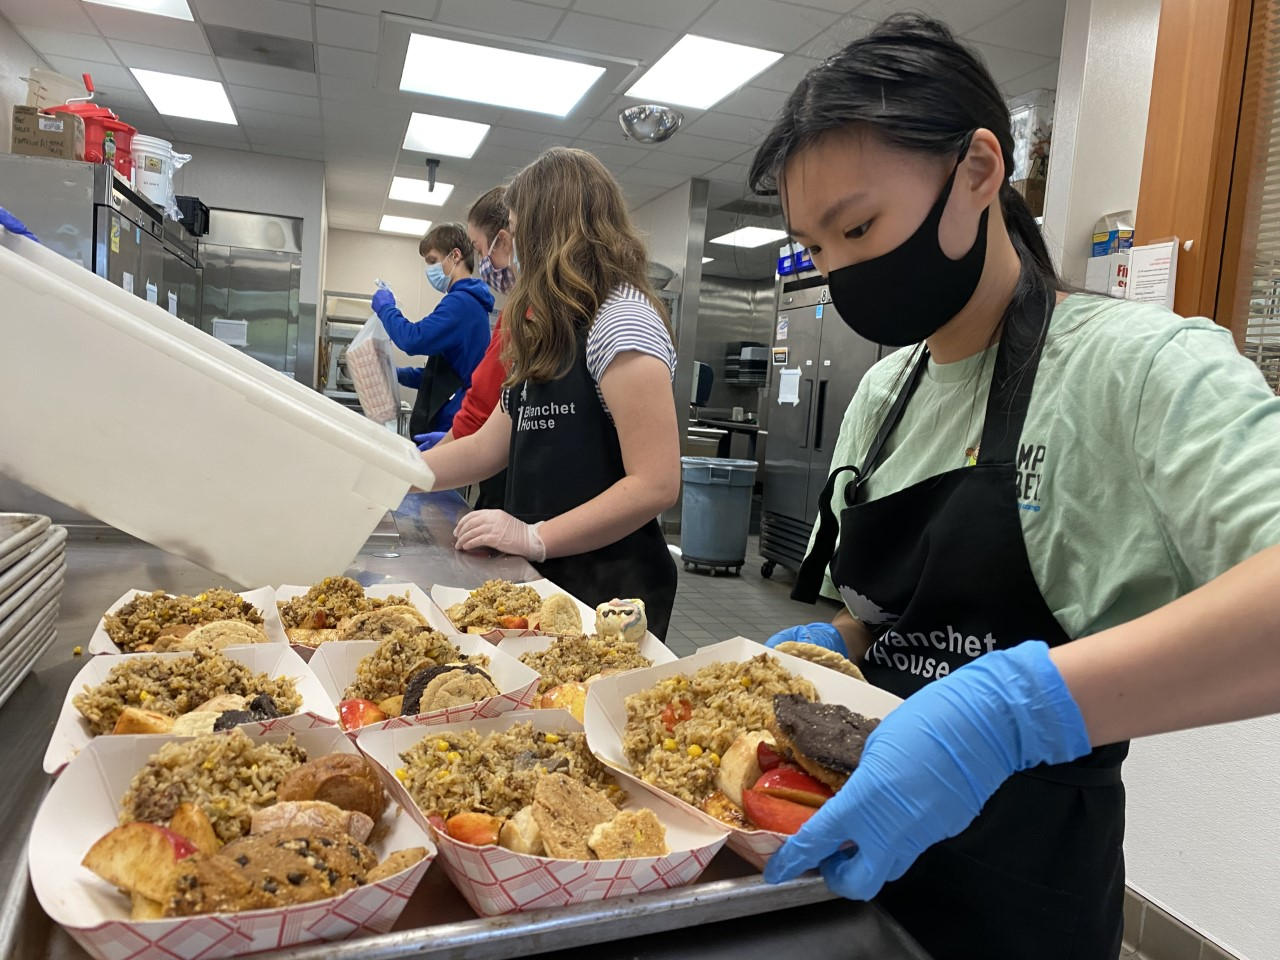 Volunteer to serve to-go meals at Blanchet House during COVID19 in Portland